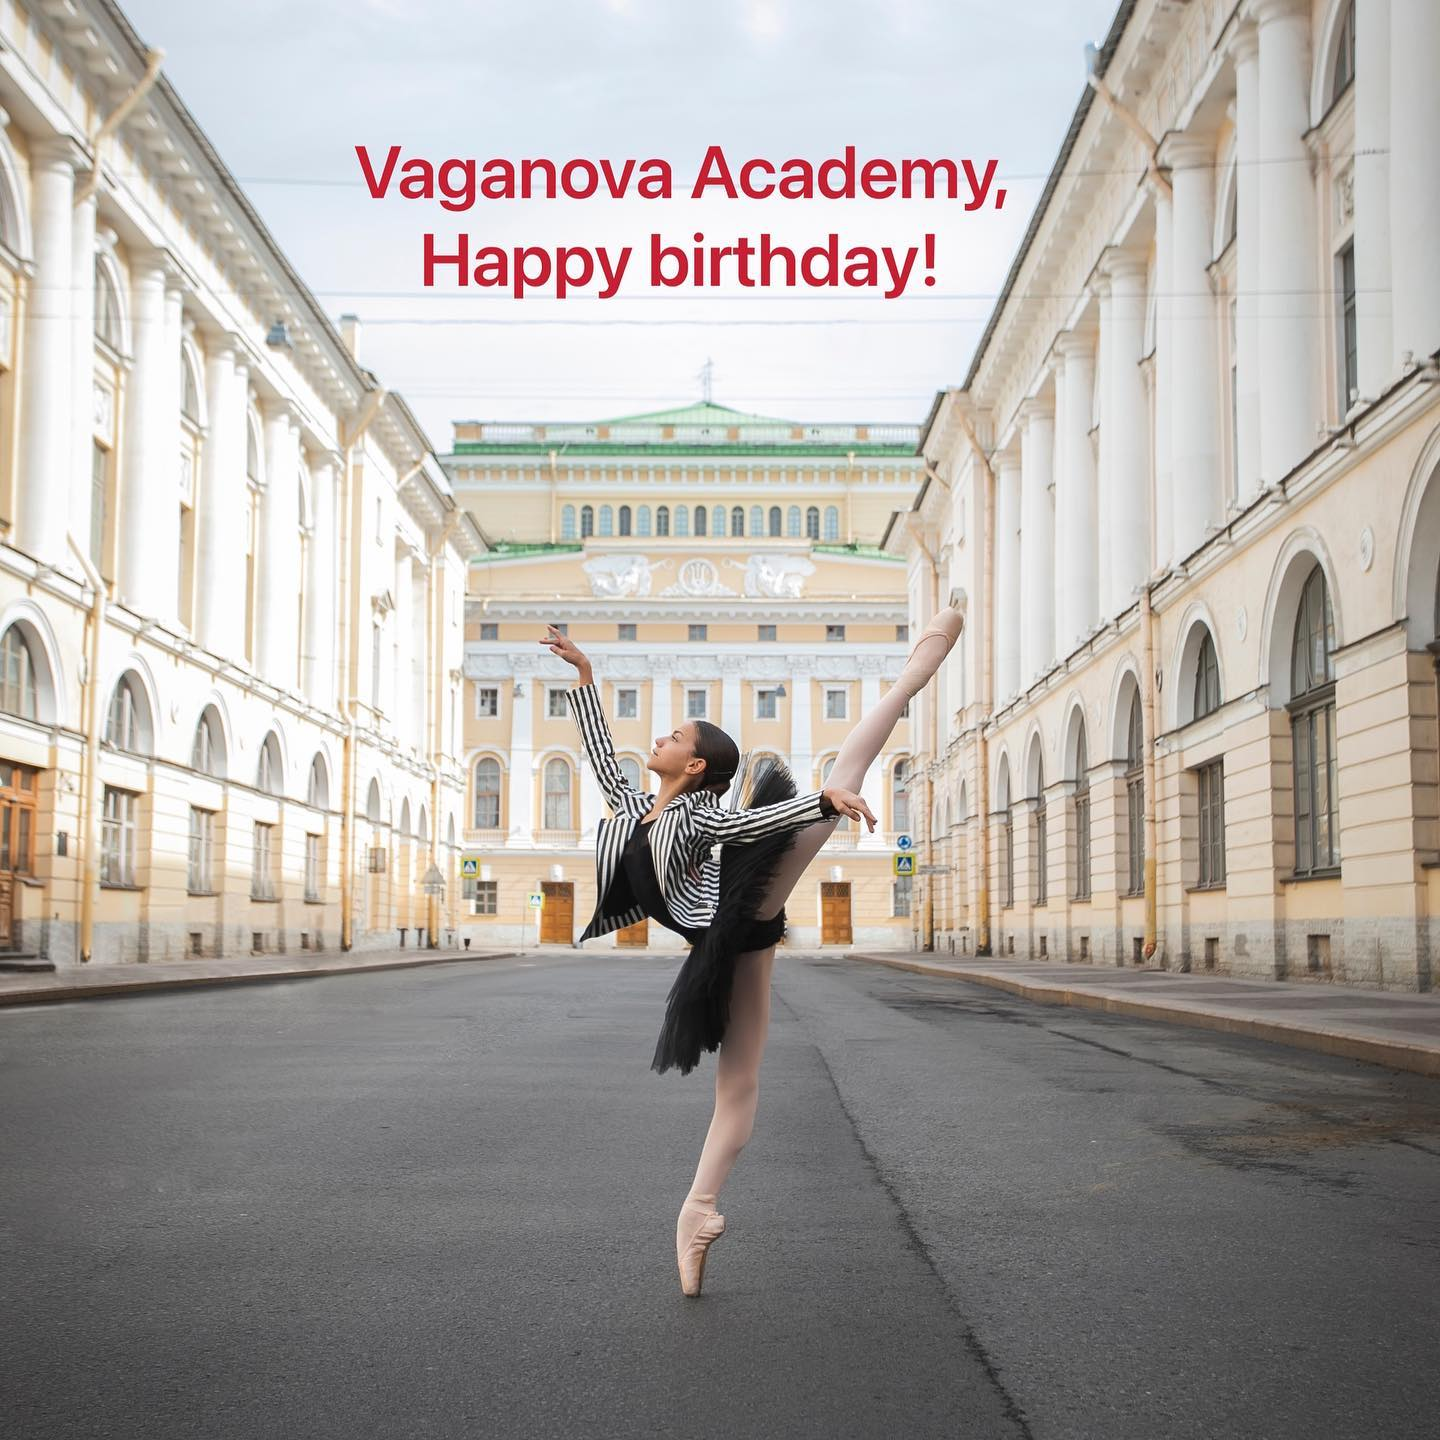 Vaganova Academy, Happy Birthday!